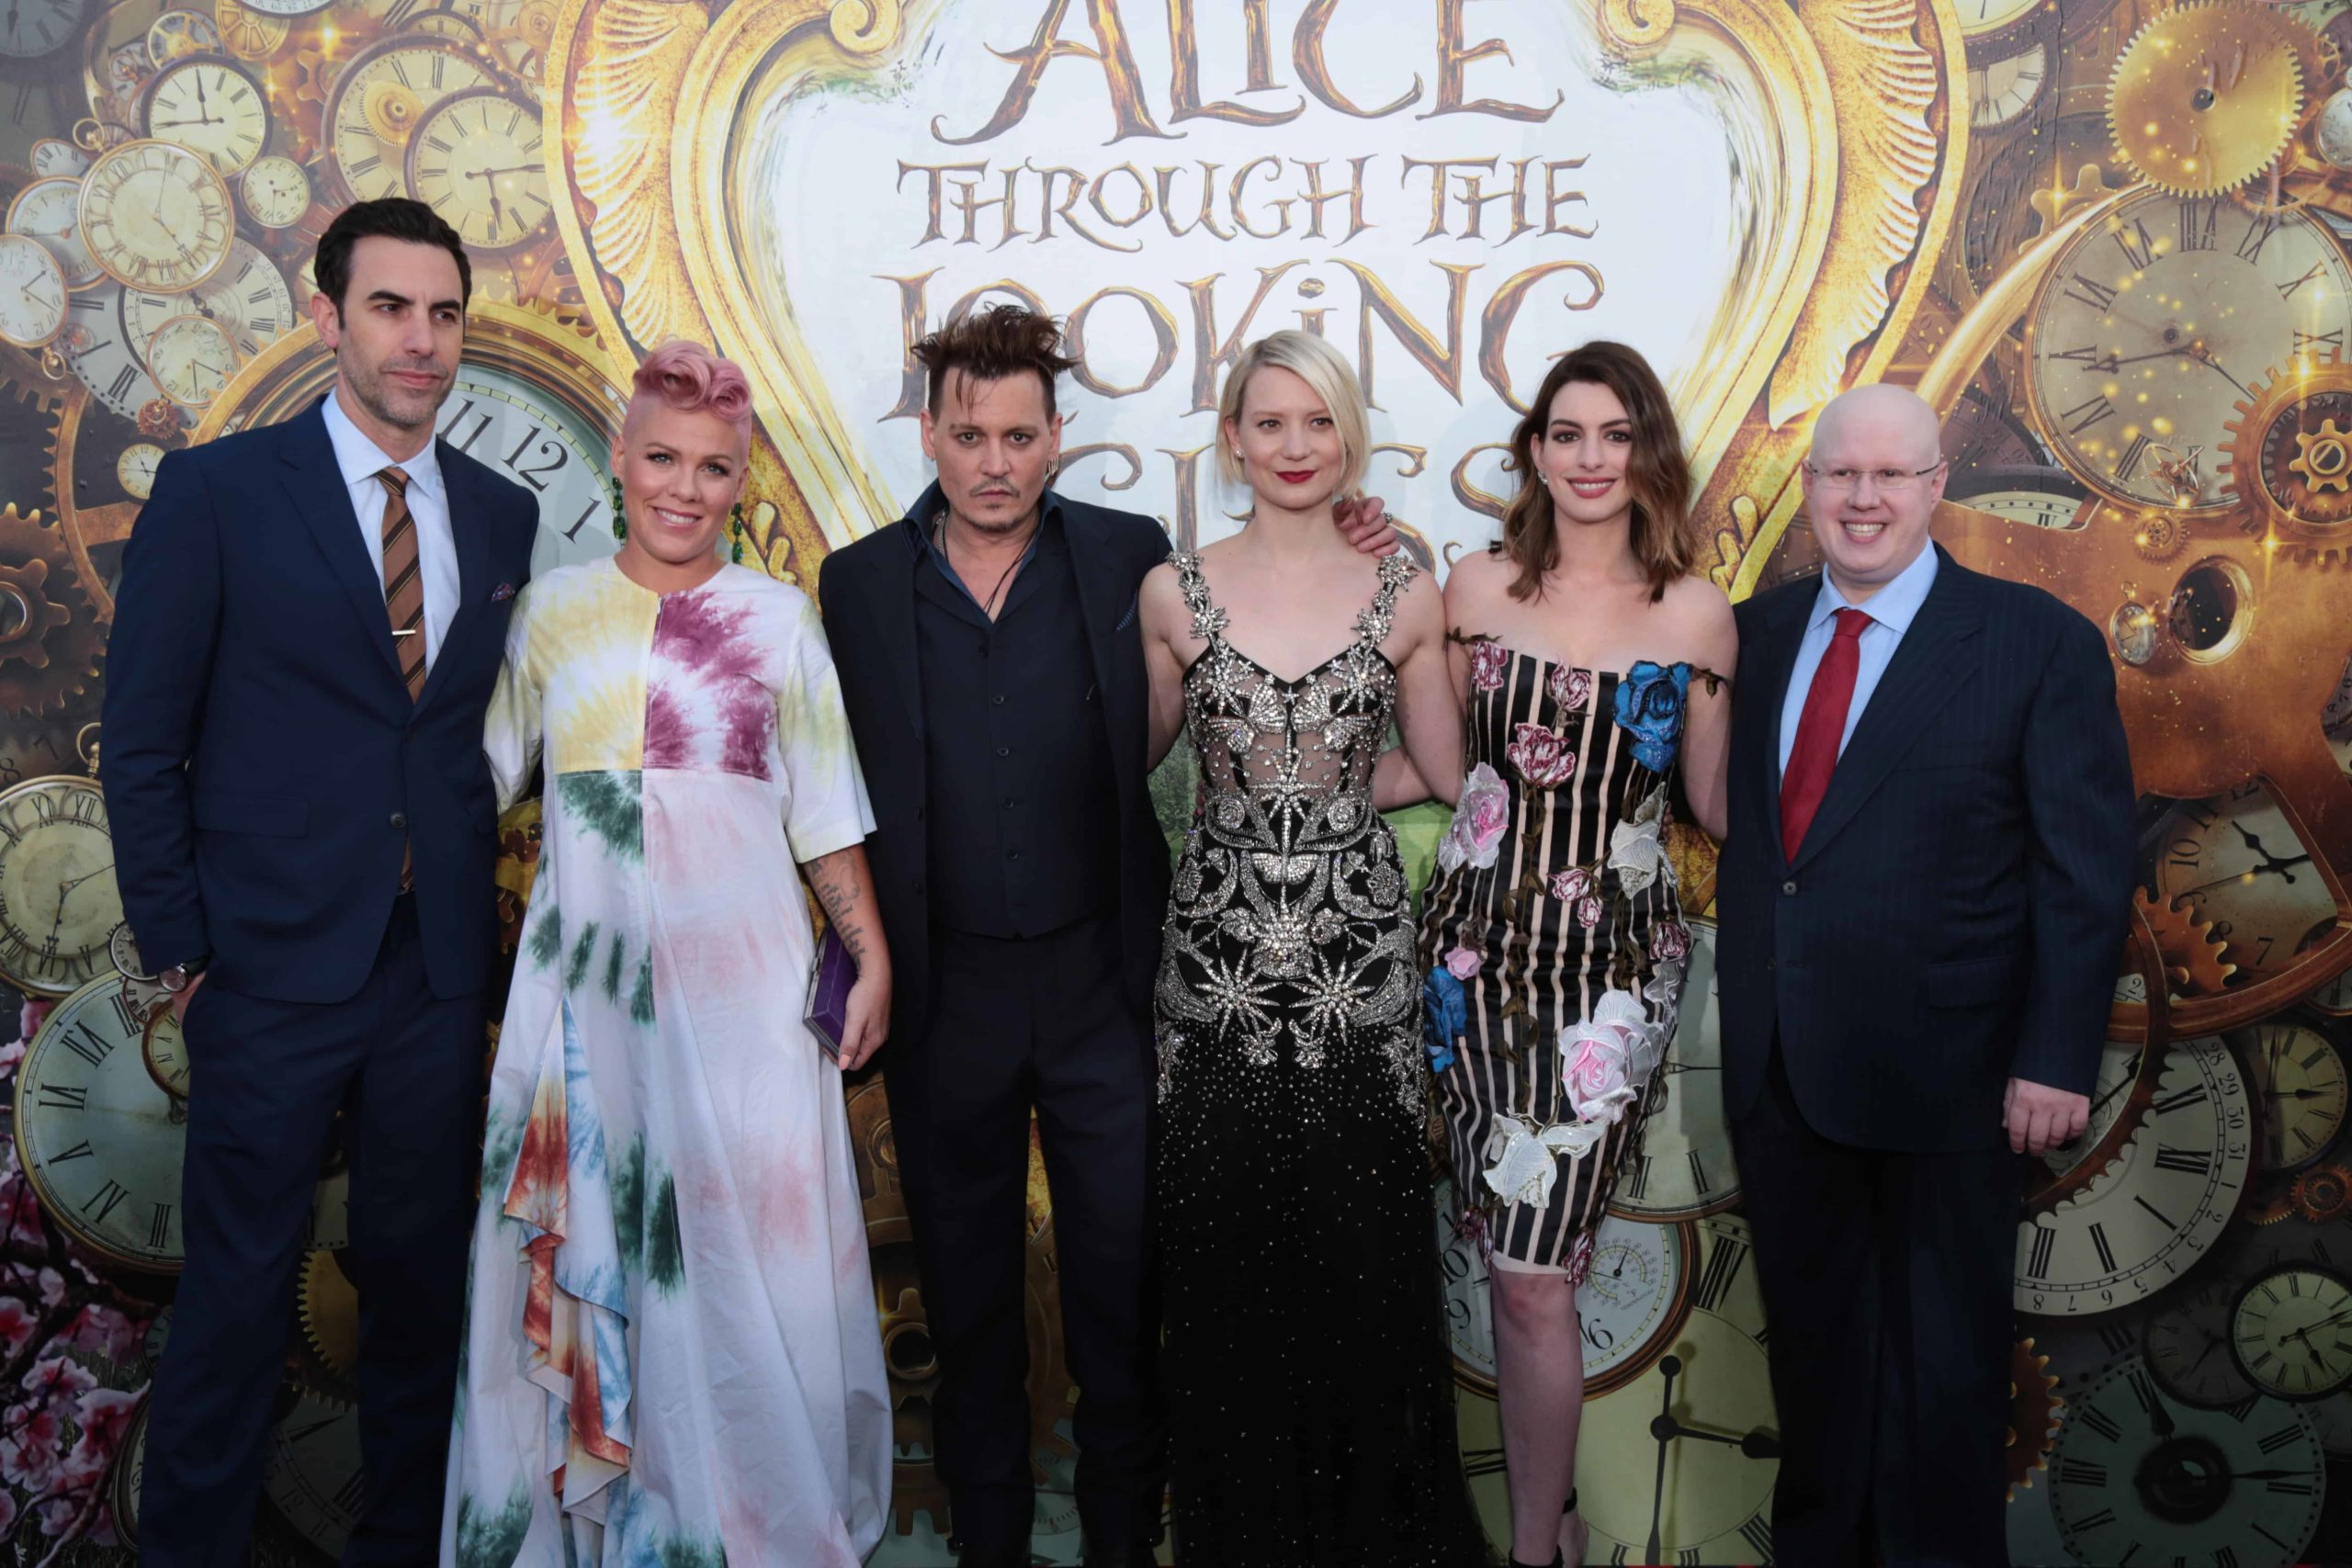 """Sacha Baron Cohen, Pink, Johnny Depp, Mia Wasikowska, Anne Hathaway and Matt Lucas pose together at The US Premiere of Disney's """"Alice Through the Looking Glass"""" at the El Capitan Theater in Los Angeles, CA on Monday, May 23, 2016. (Photo: Alex J. Berliner/ABImages)"""